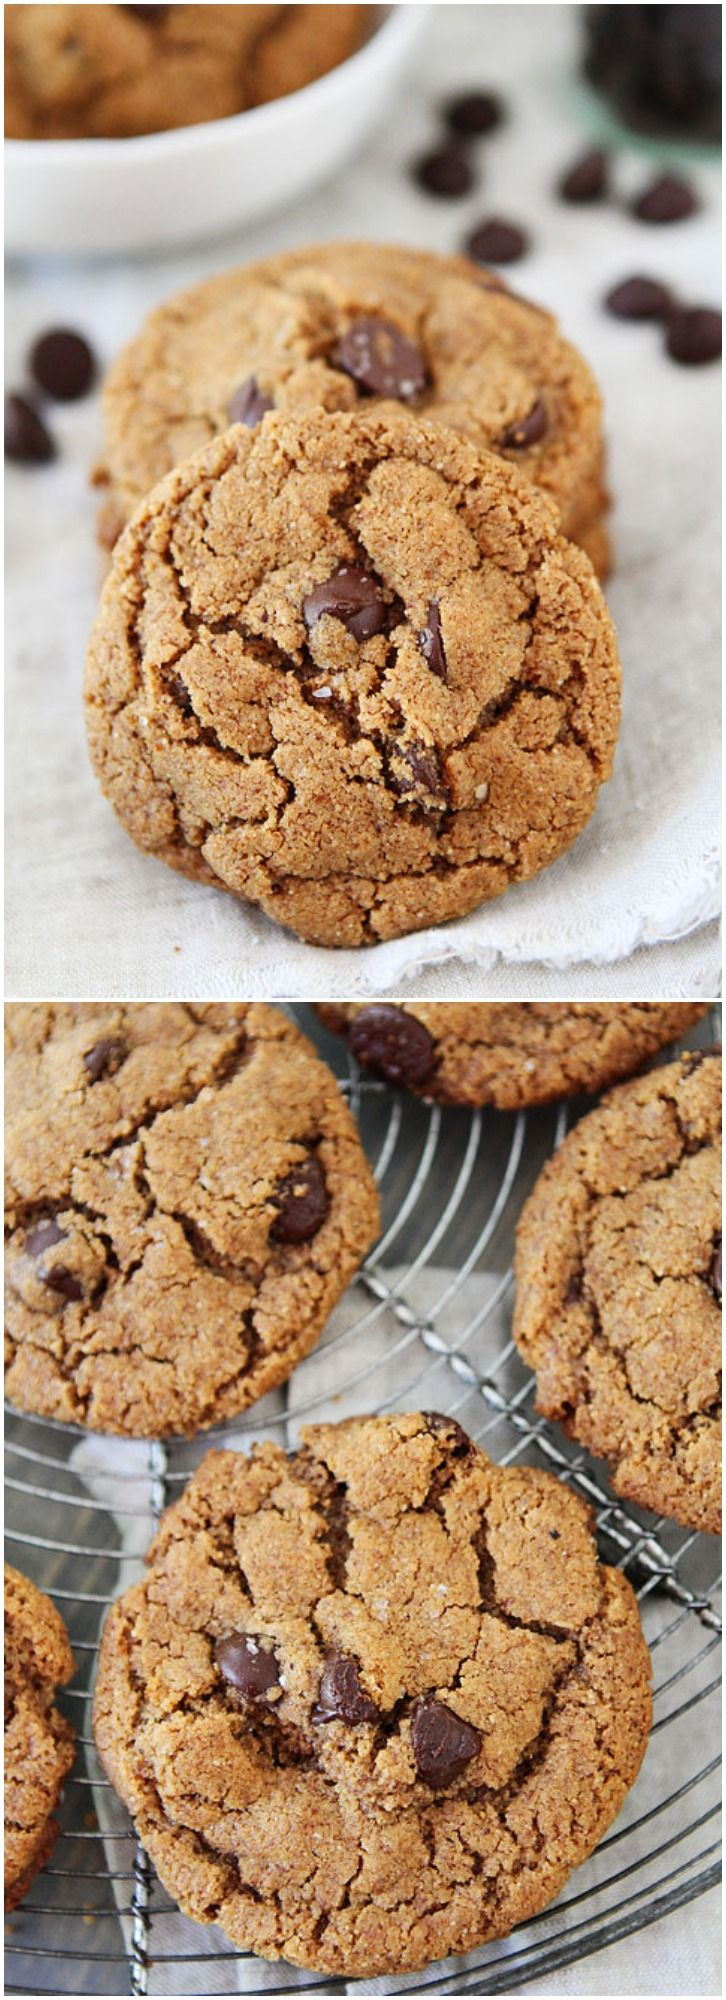 Flourless Almond Butter Chocolate Chip Cookies on twopeasandtheirpod.com Love these gluten-free cookies! So easy to make too!